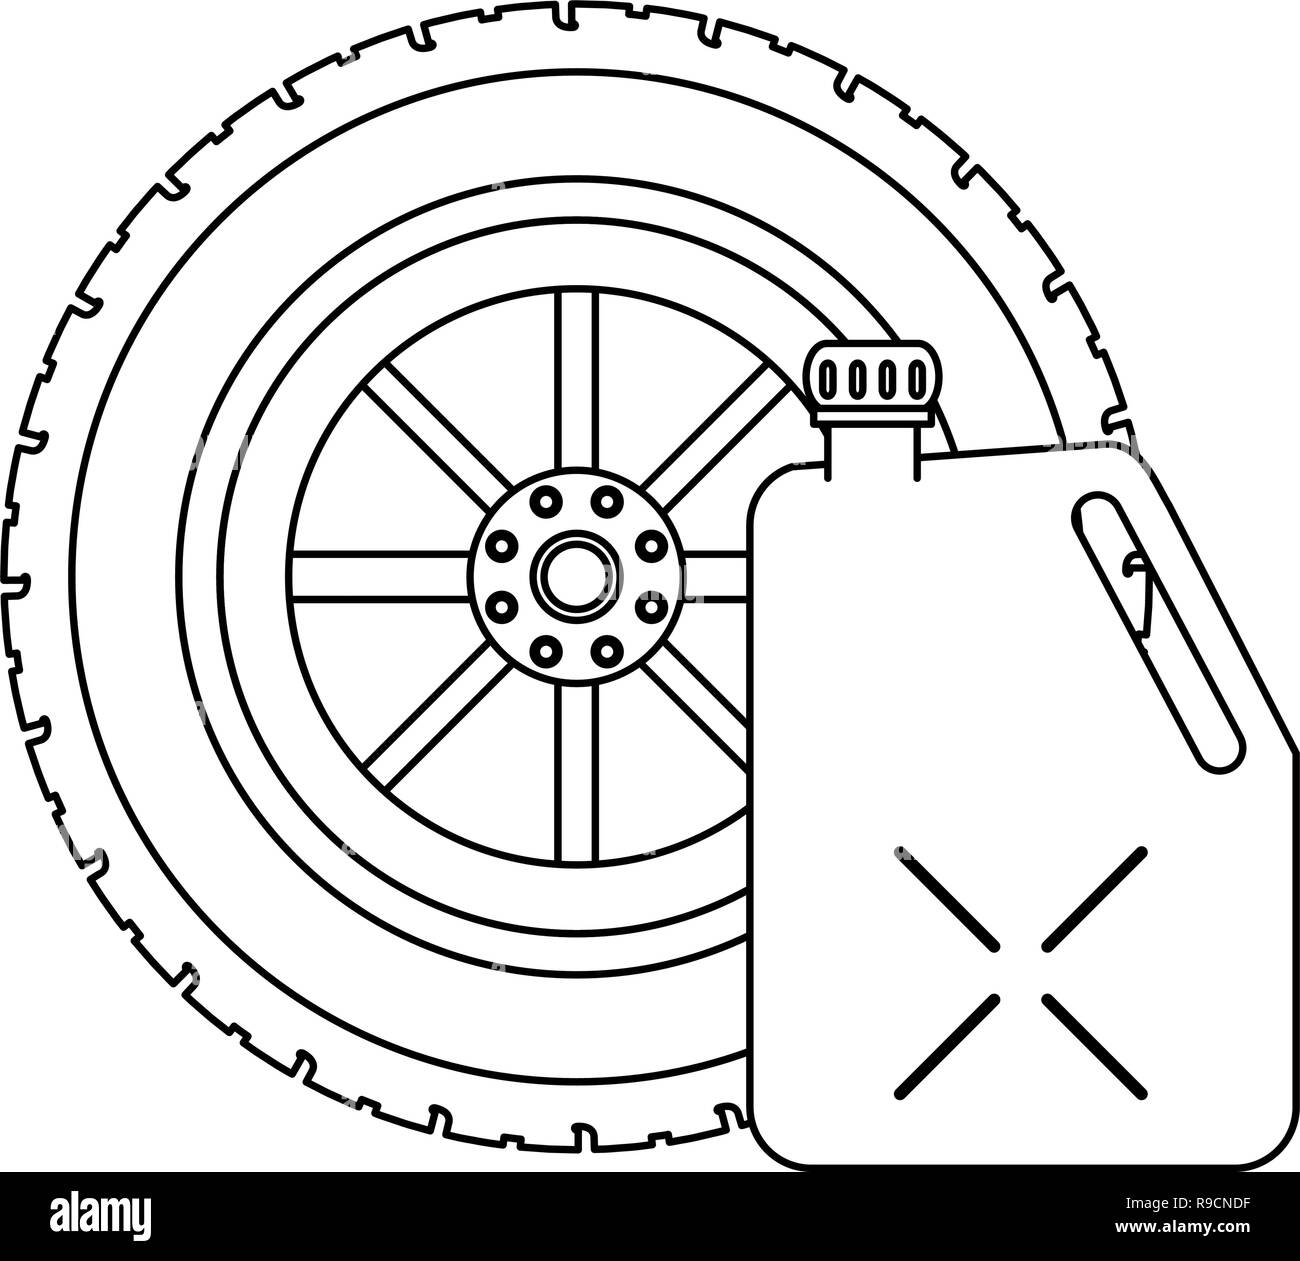 Tire wheel and container in black and white Stock Vector